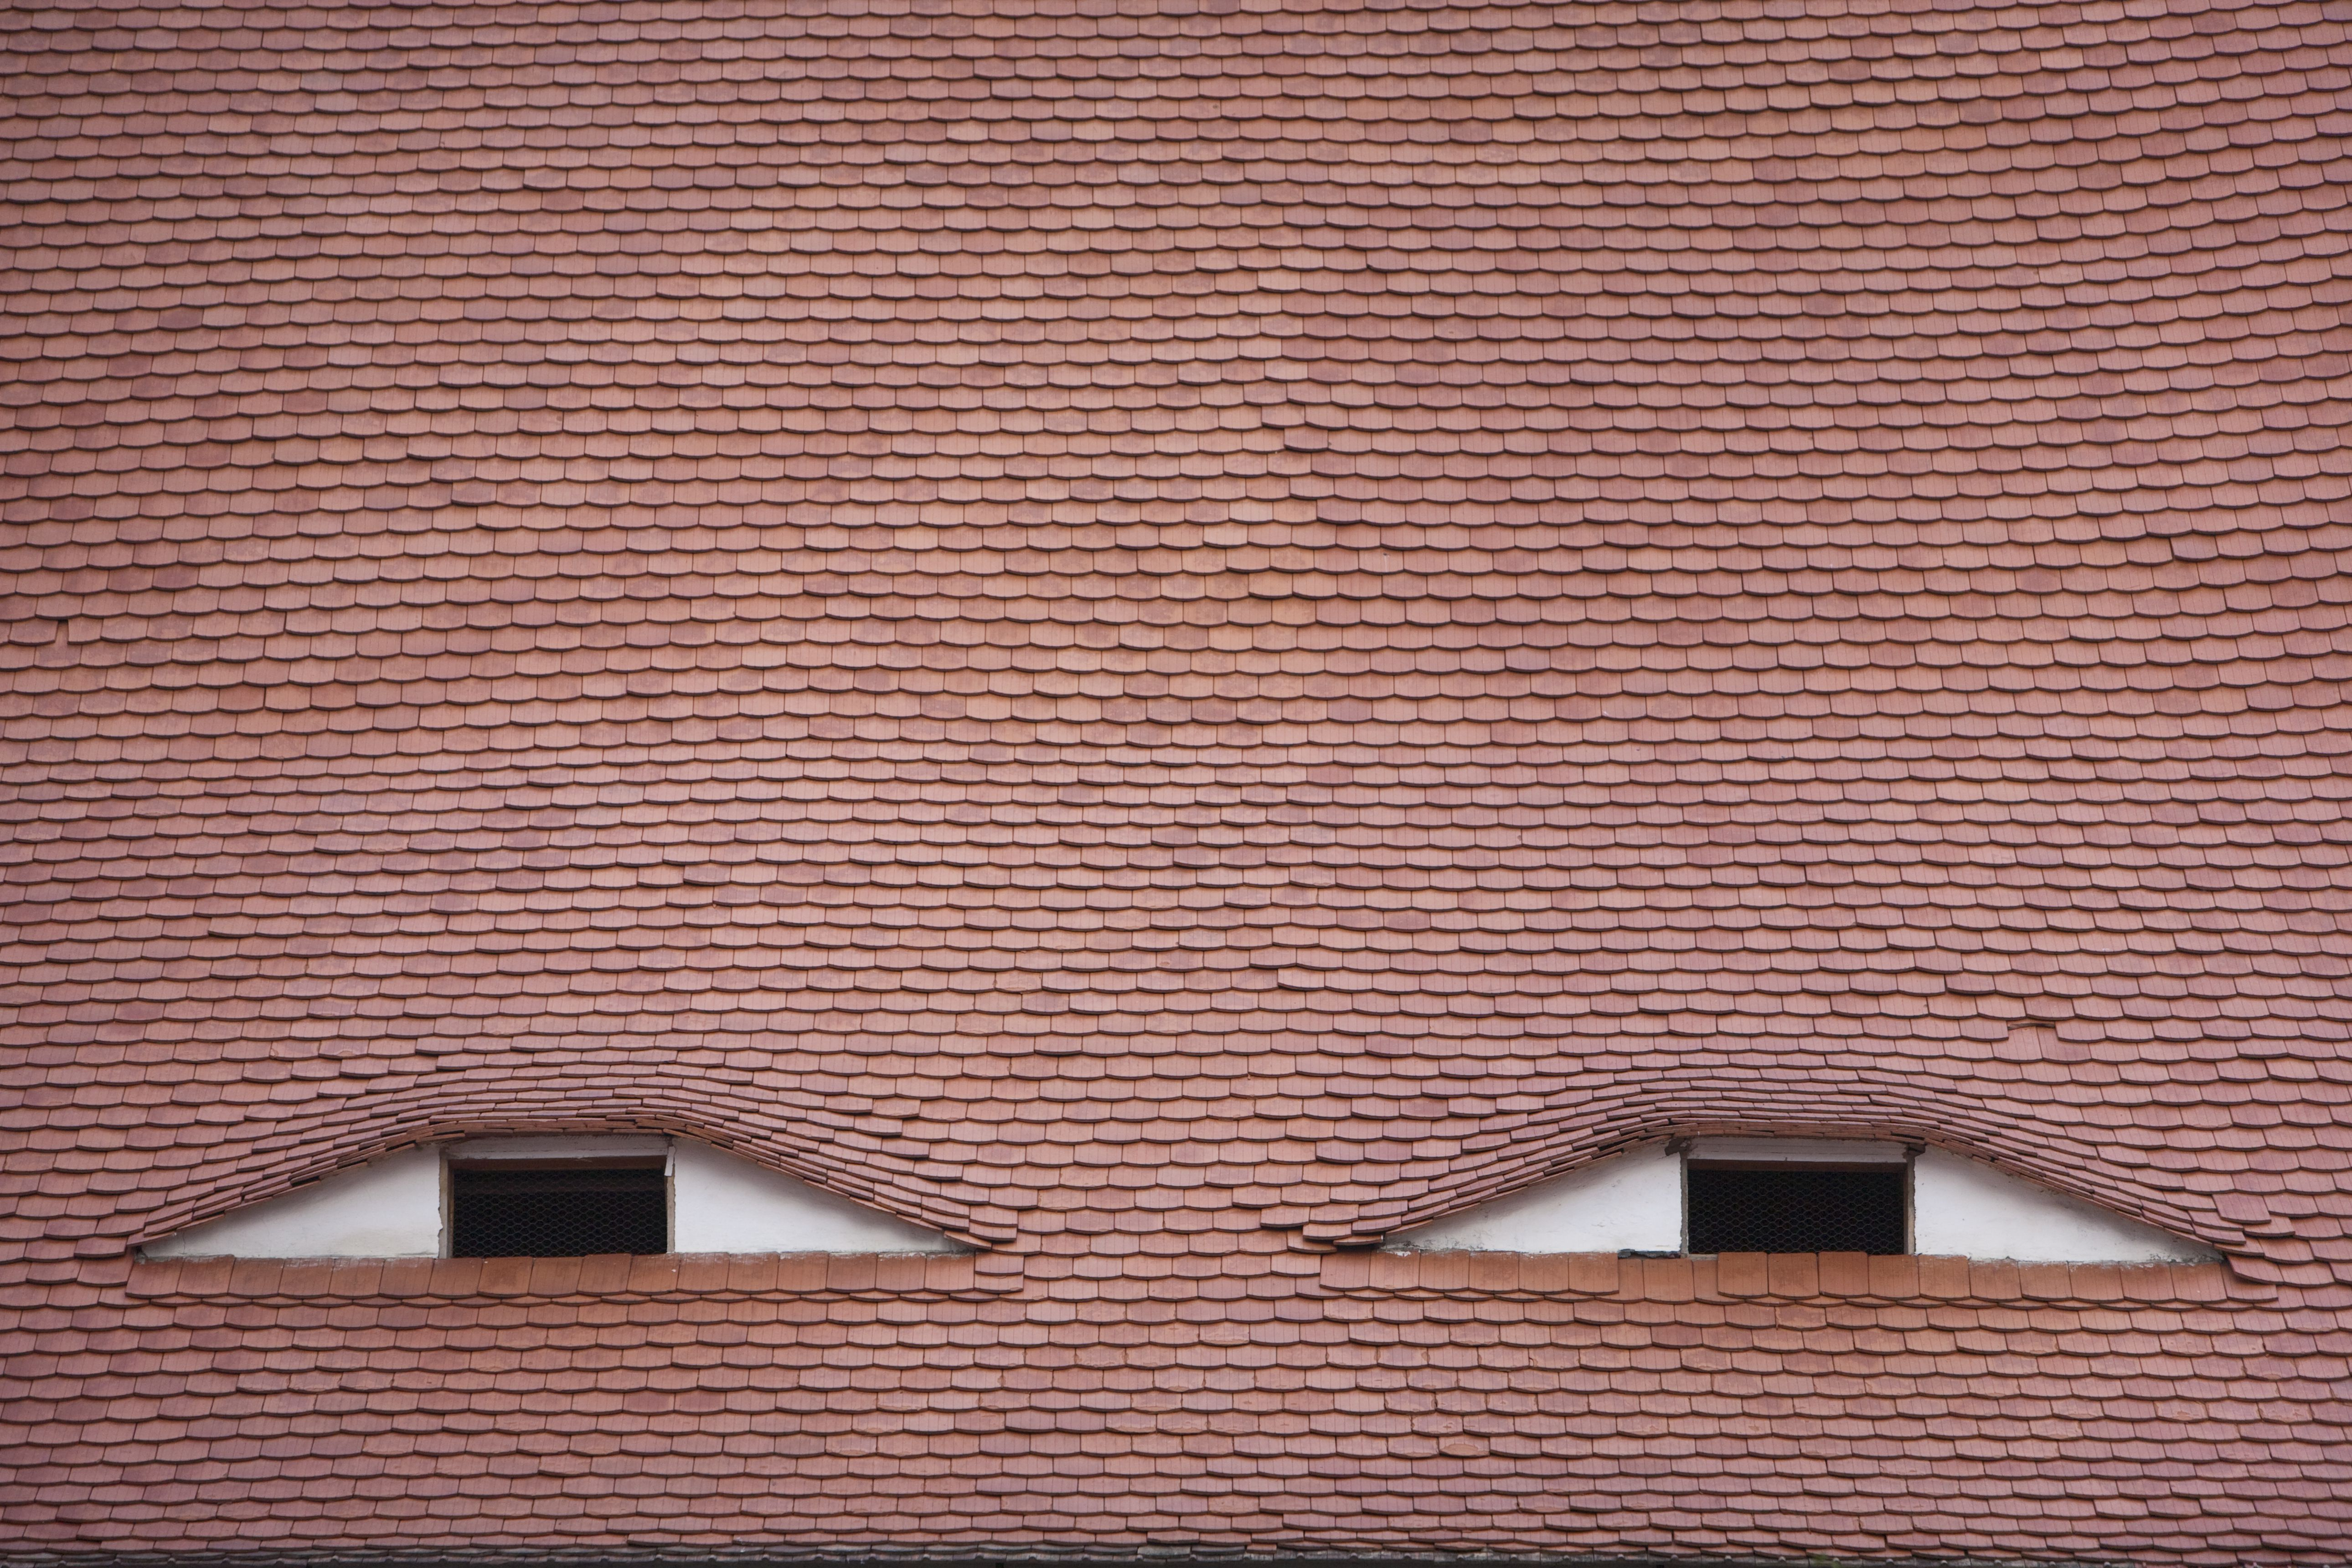 Two eyebrow window dormers in a red tile roof